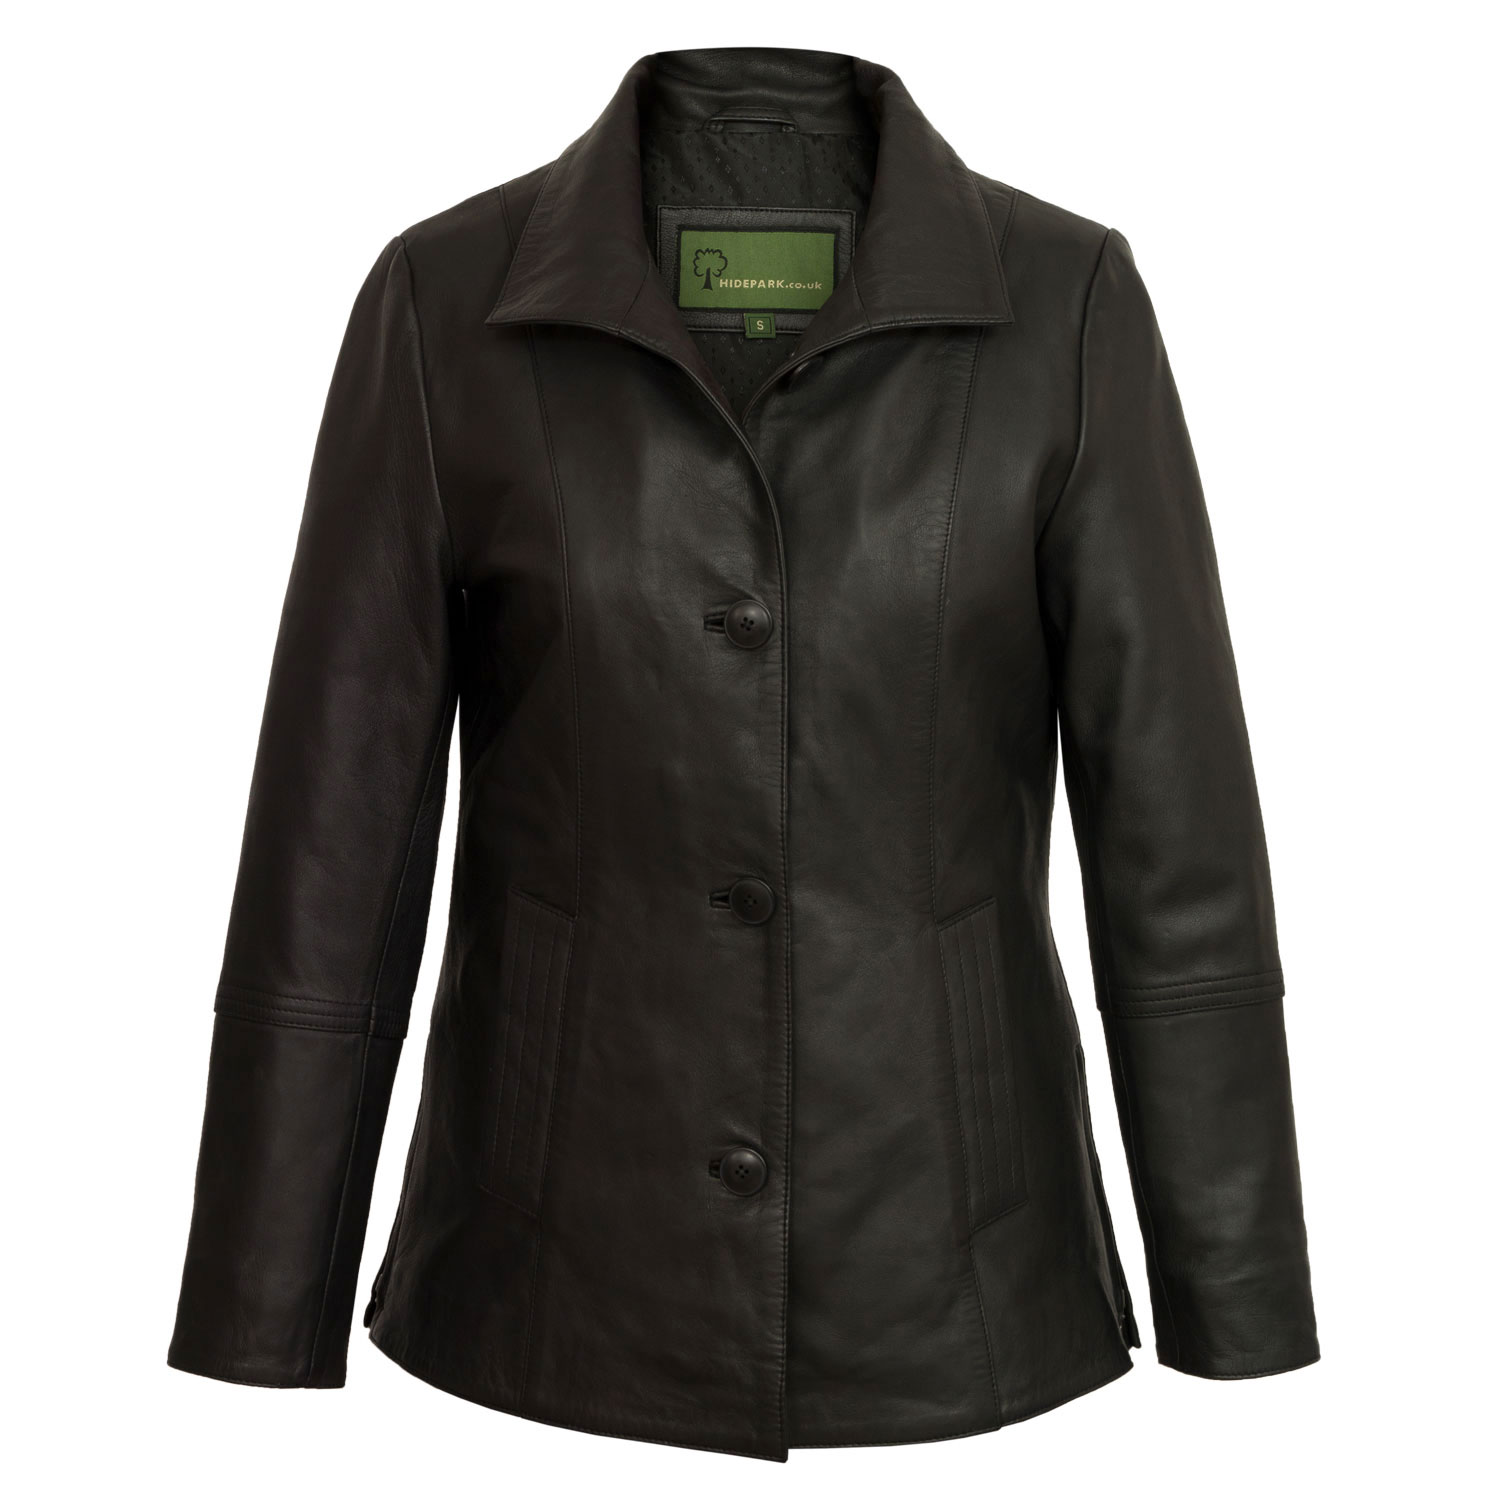 Women's Black Leather Jacket: Angie